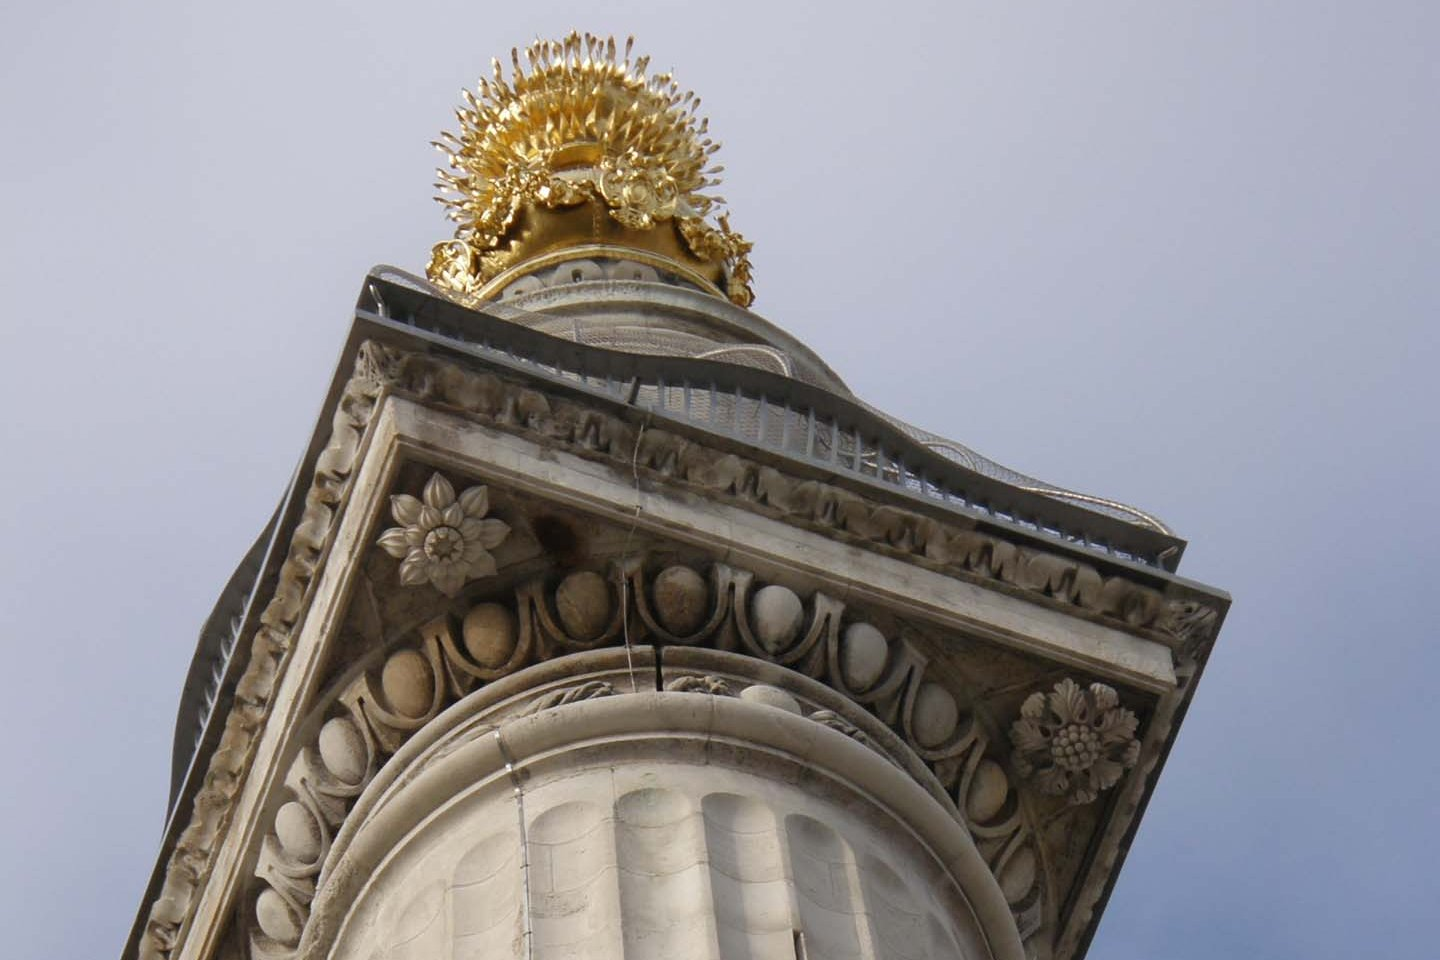 Transparent Webnet securing Monument Tower in London